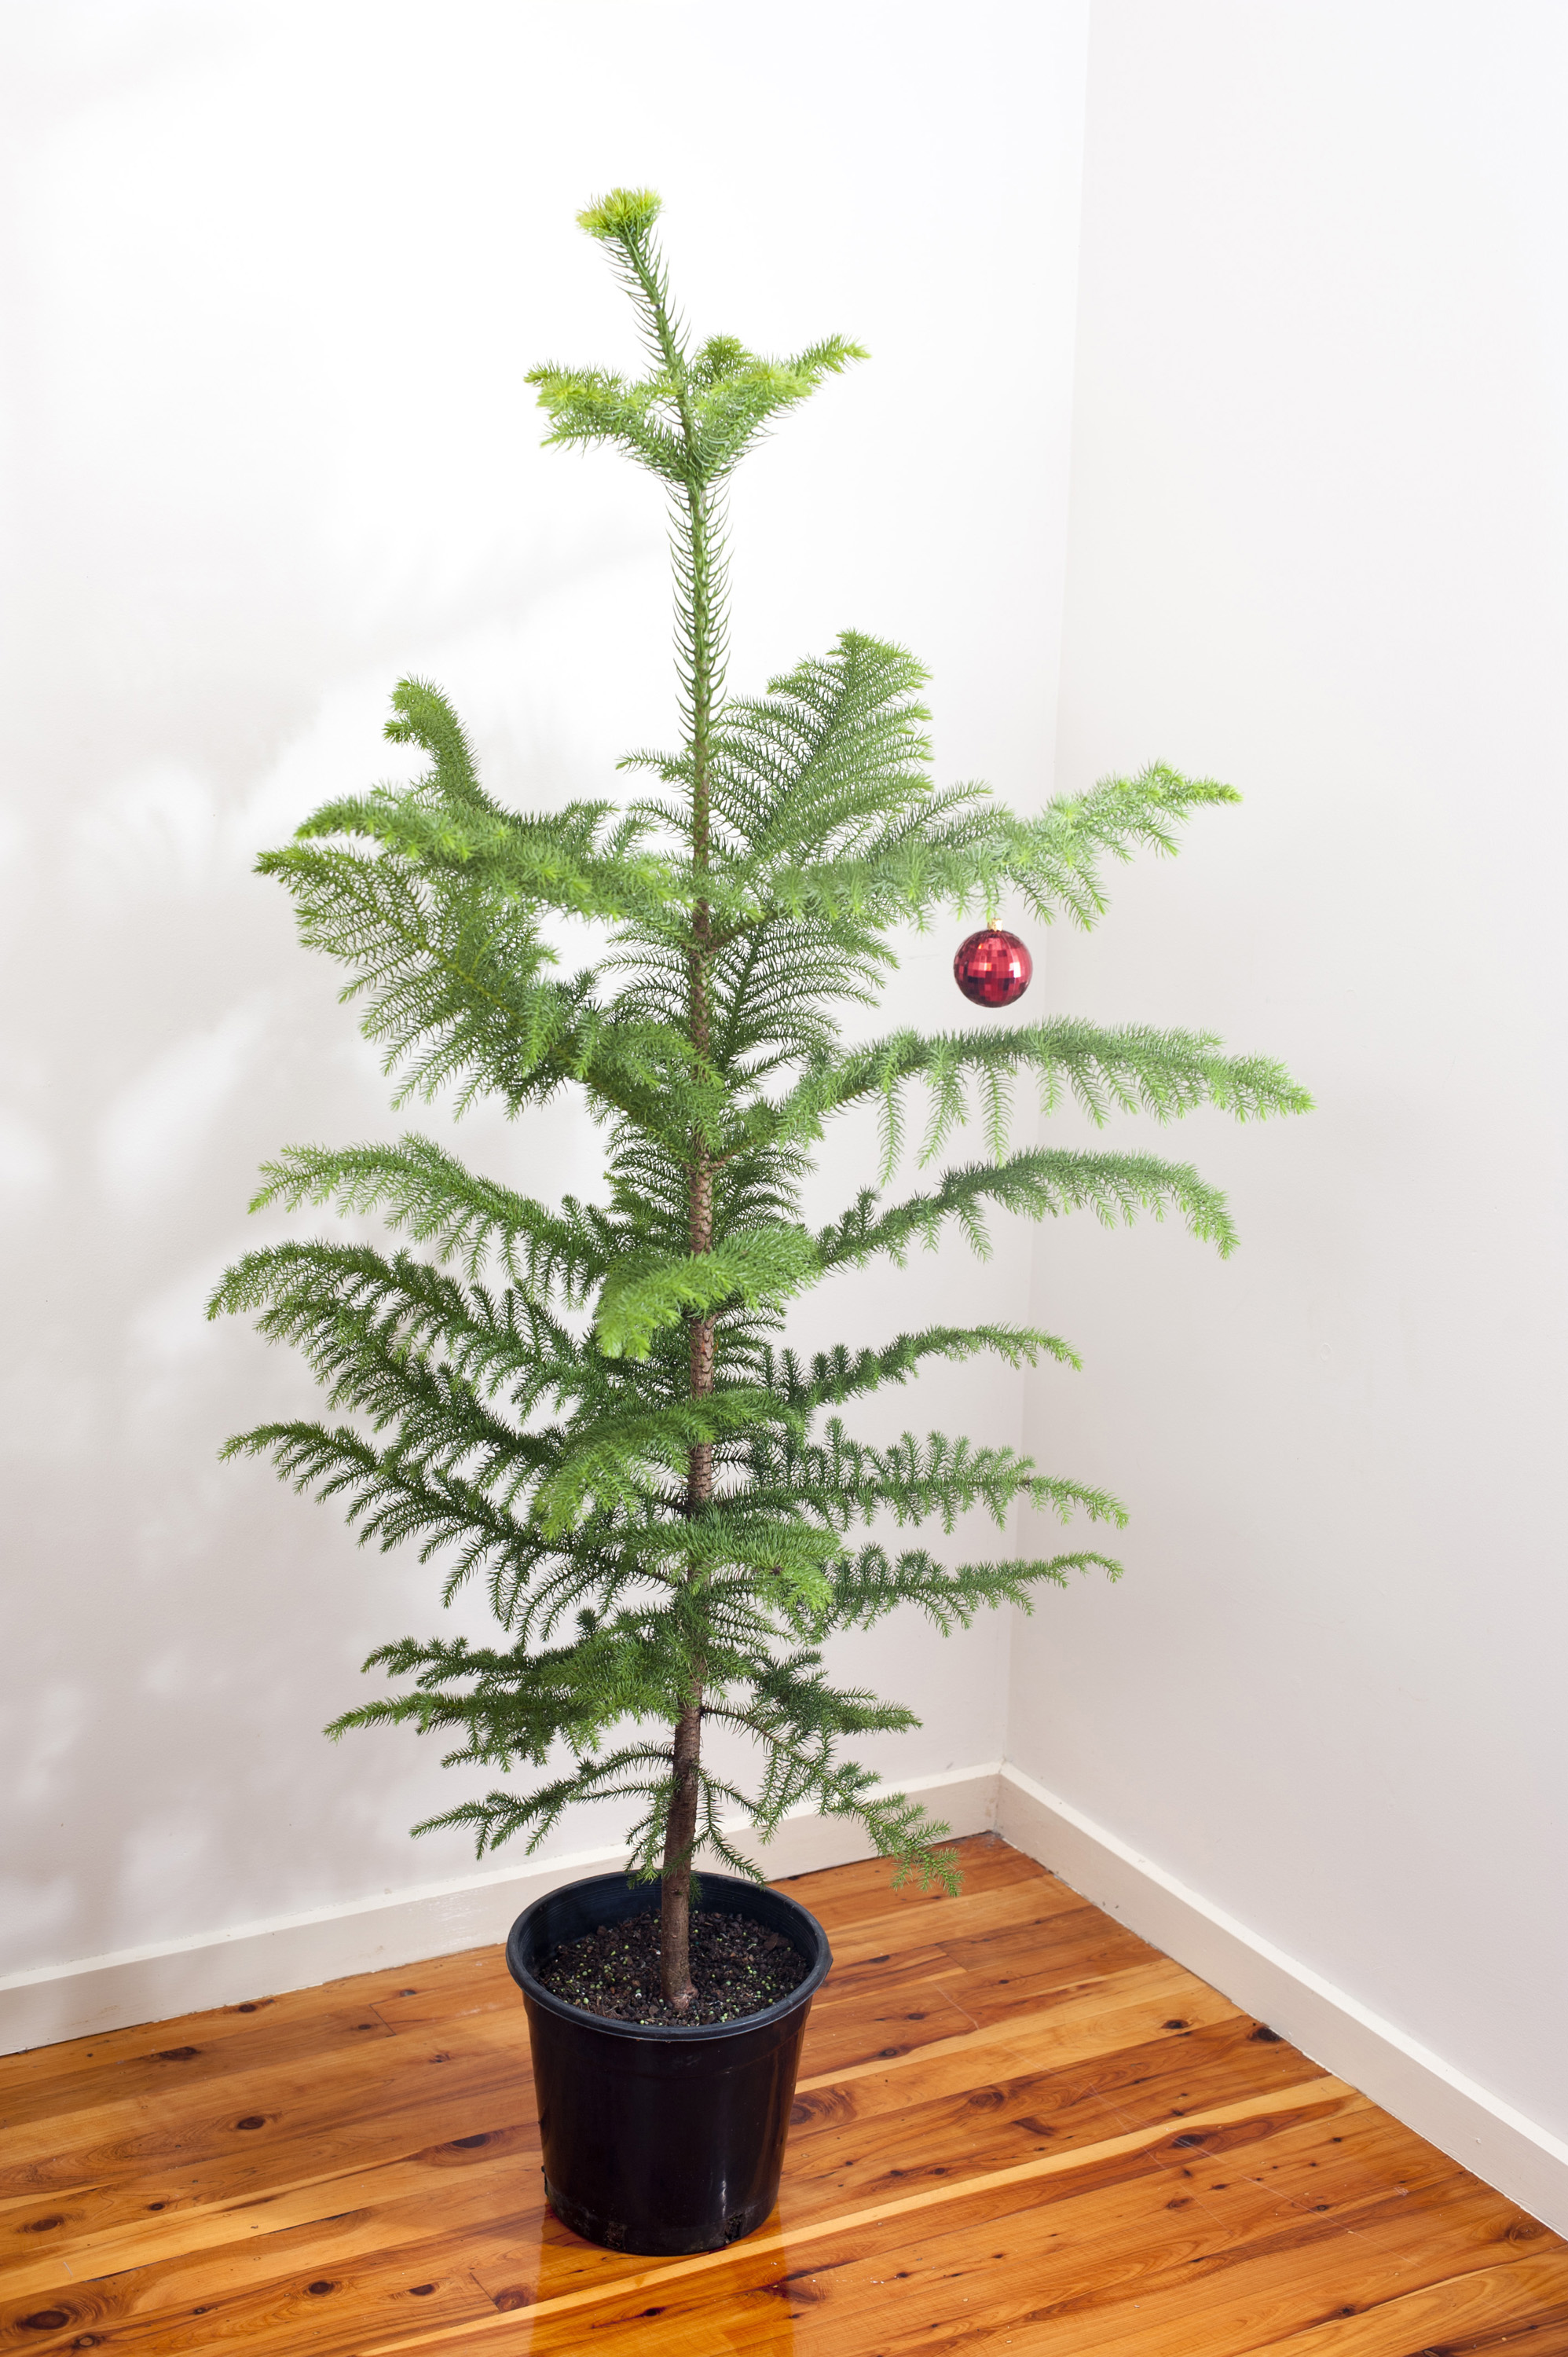 Natural Norfolk pine Christmas tree decorated with a single shiny red bauble standing in the corner of two white walls on a hardwood floor